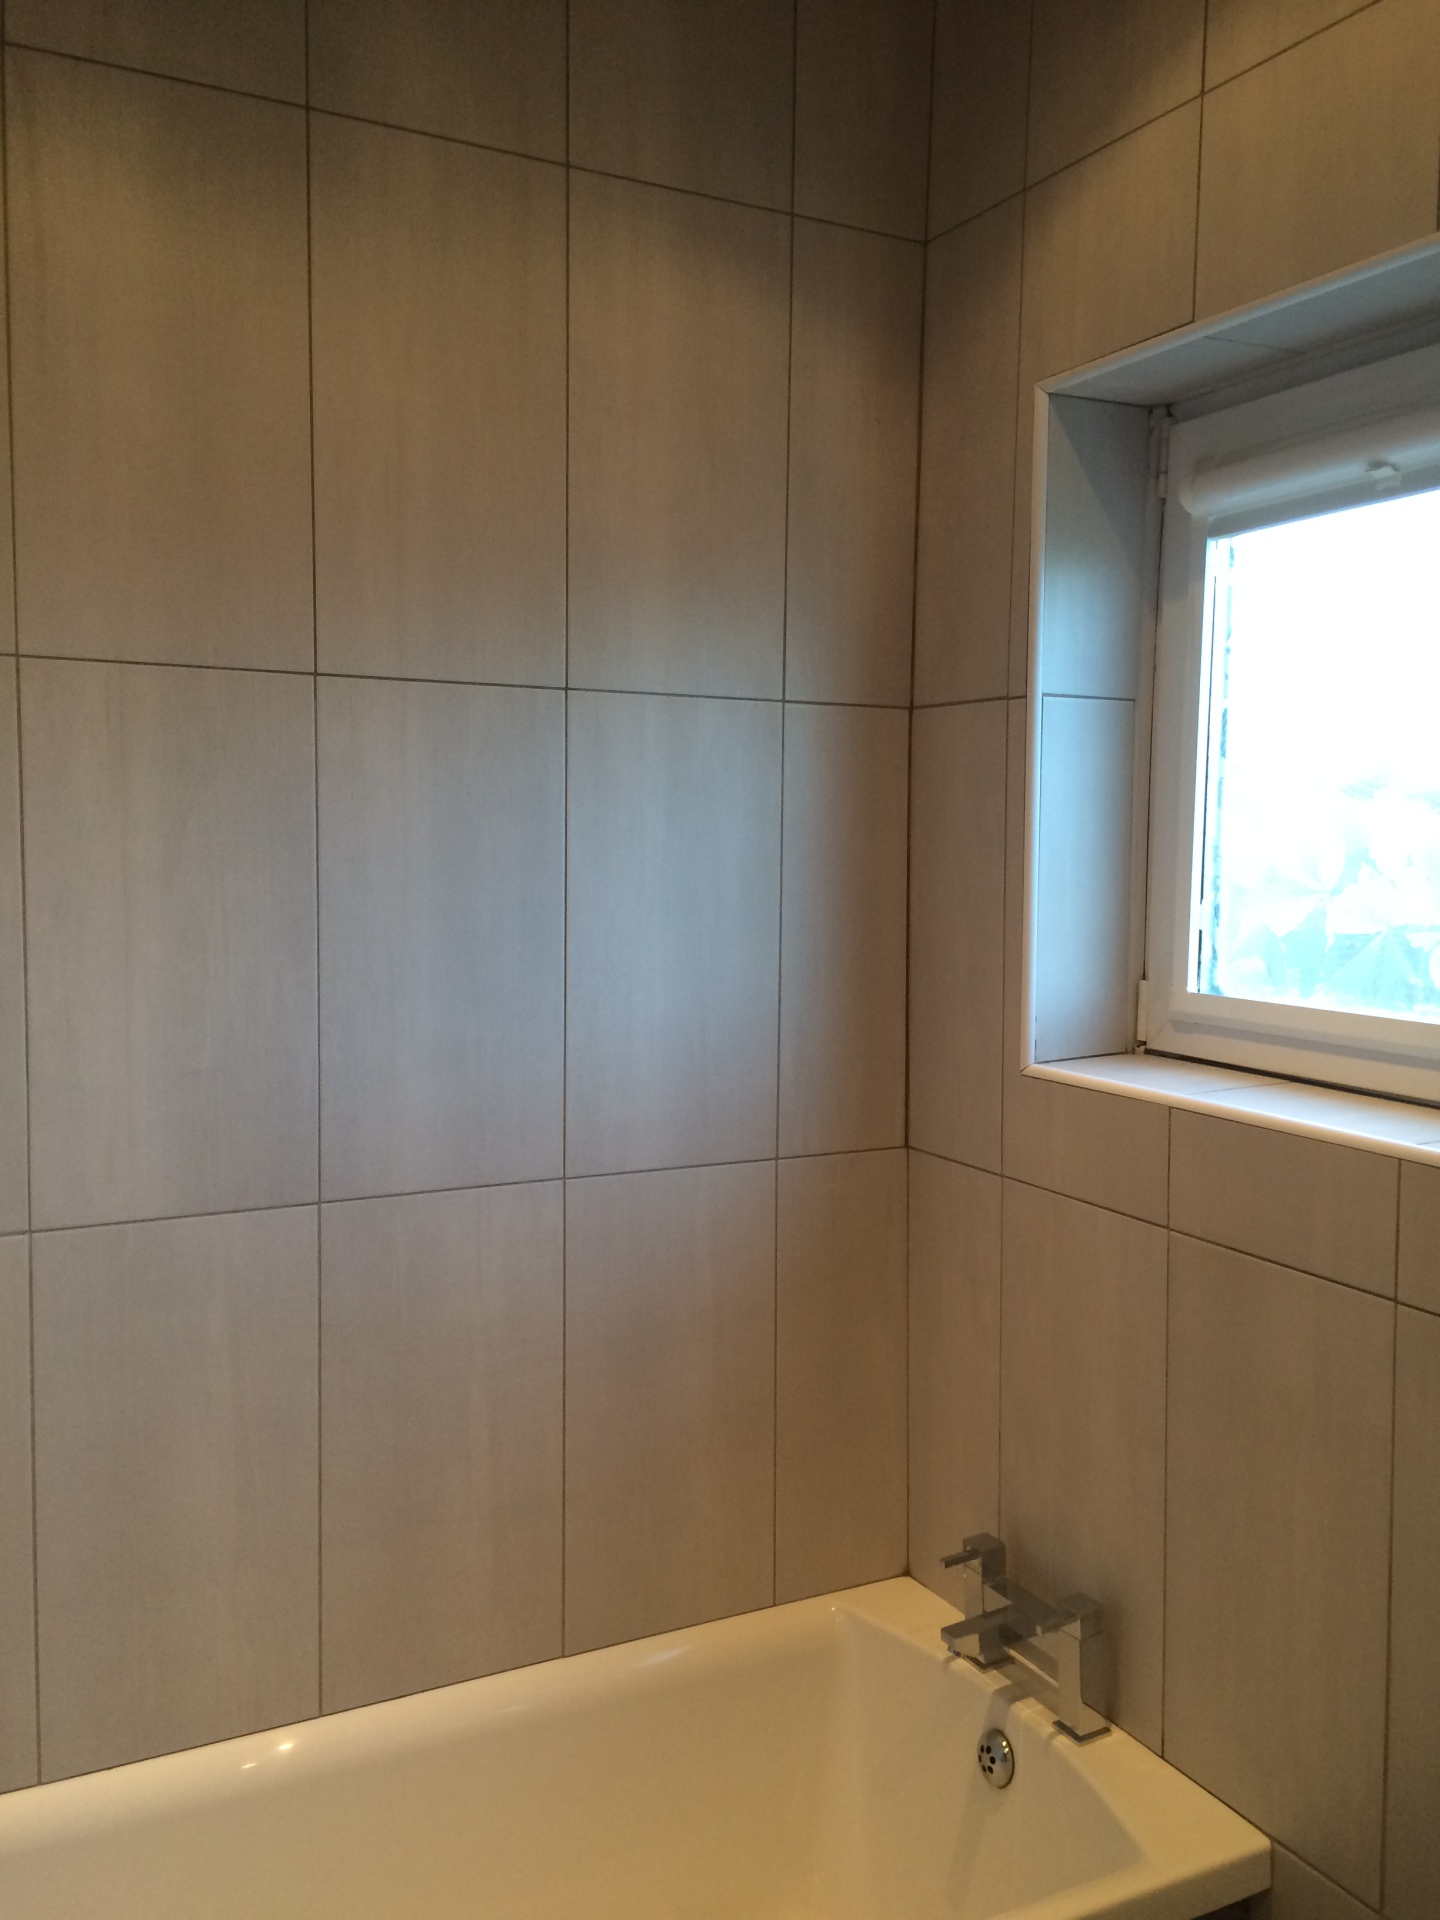 Porcelain Bathroom Tiles